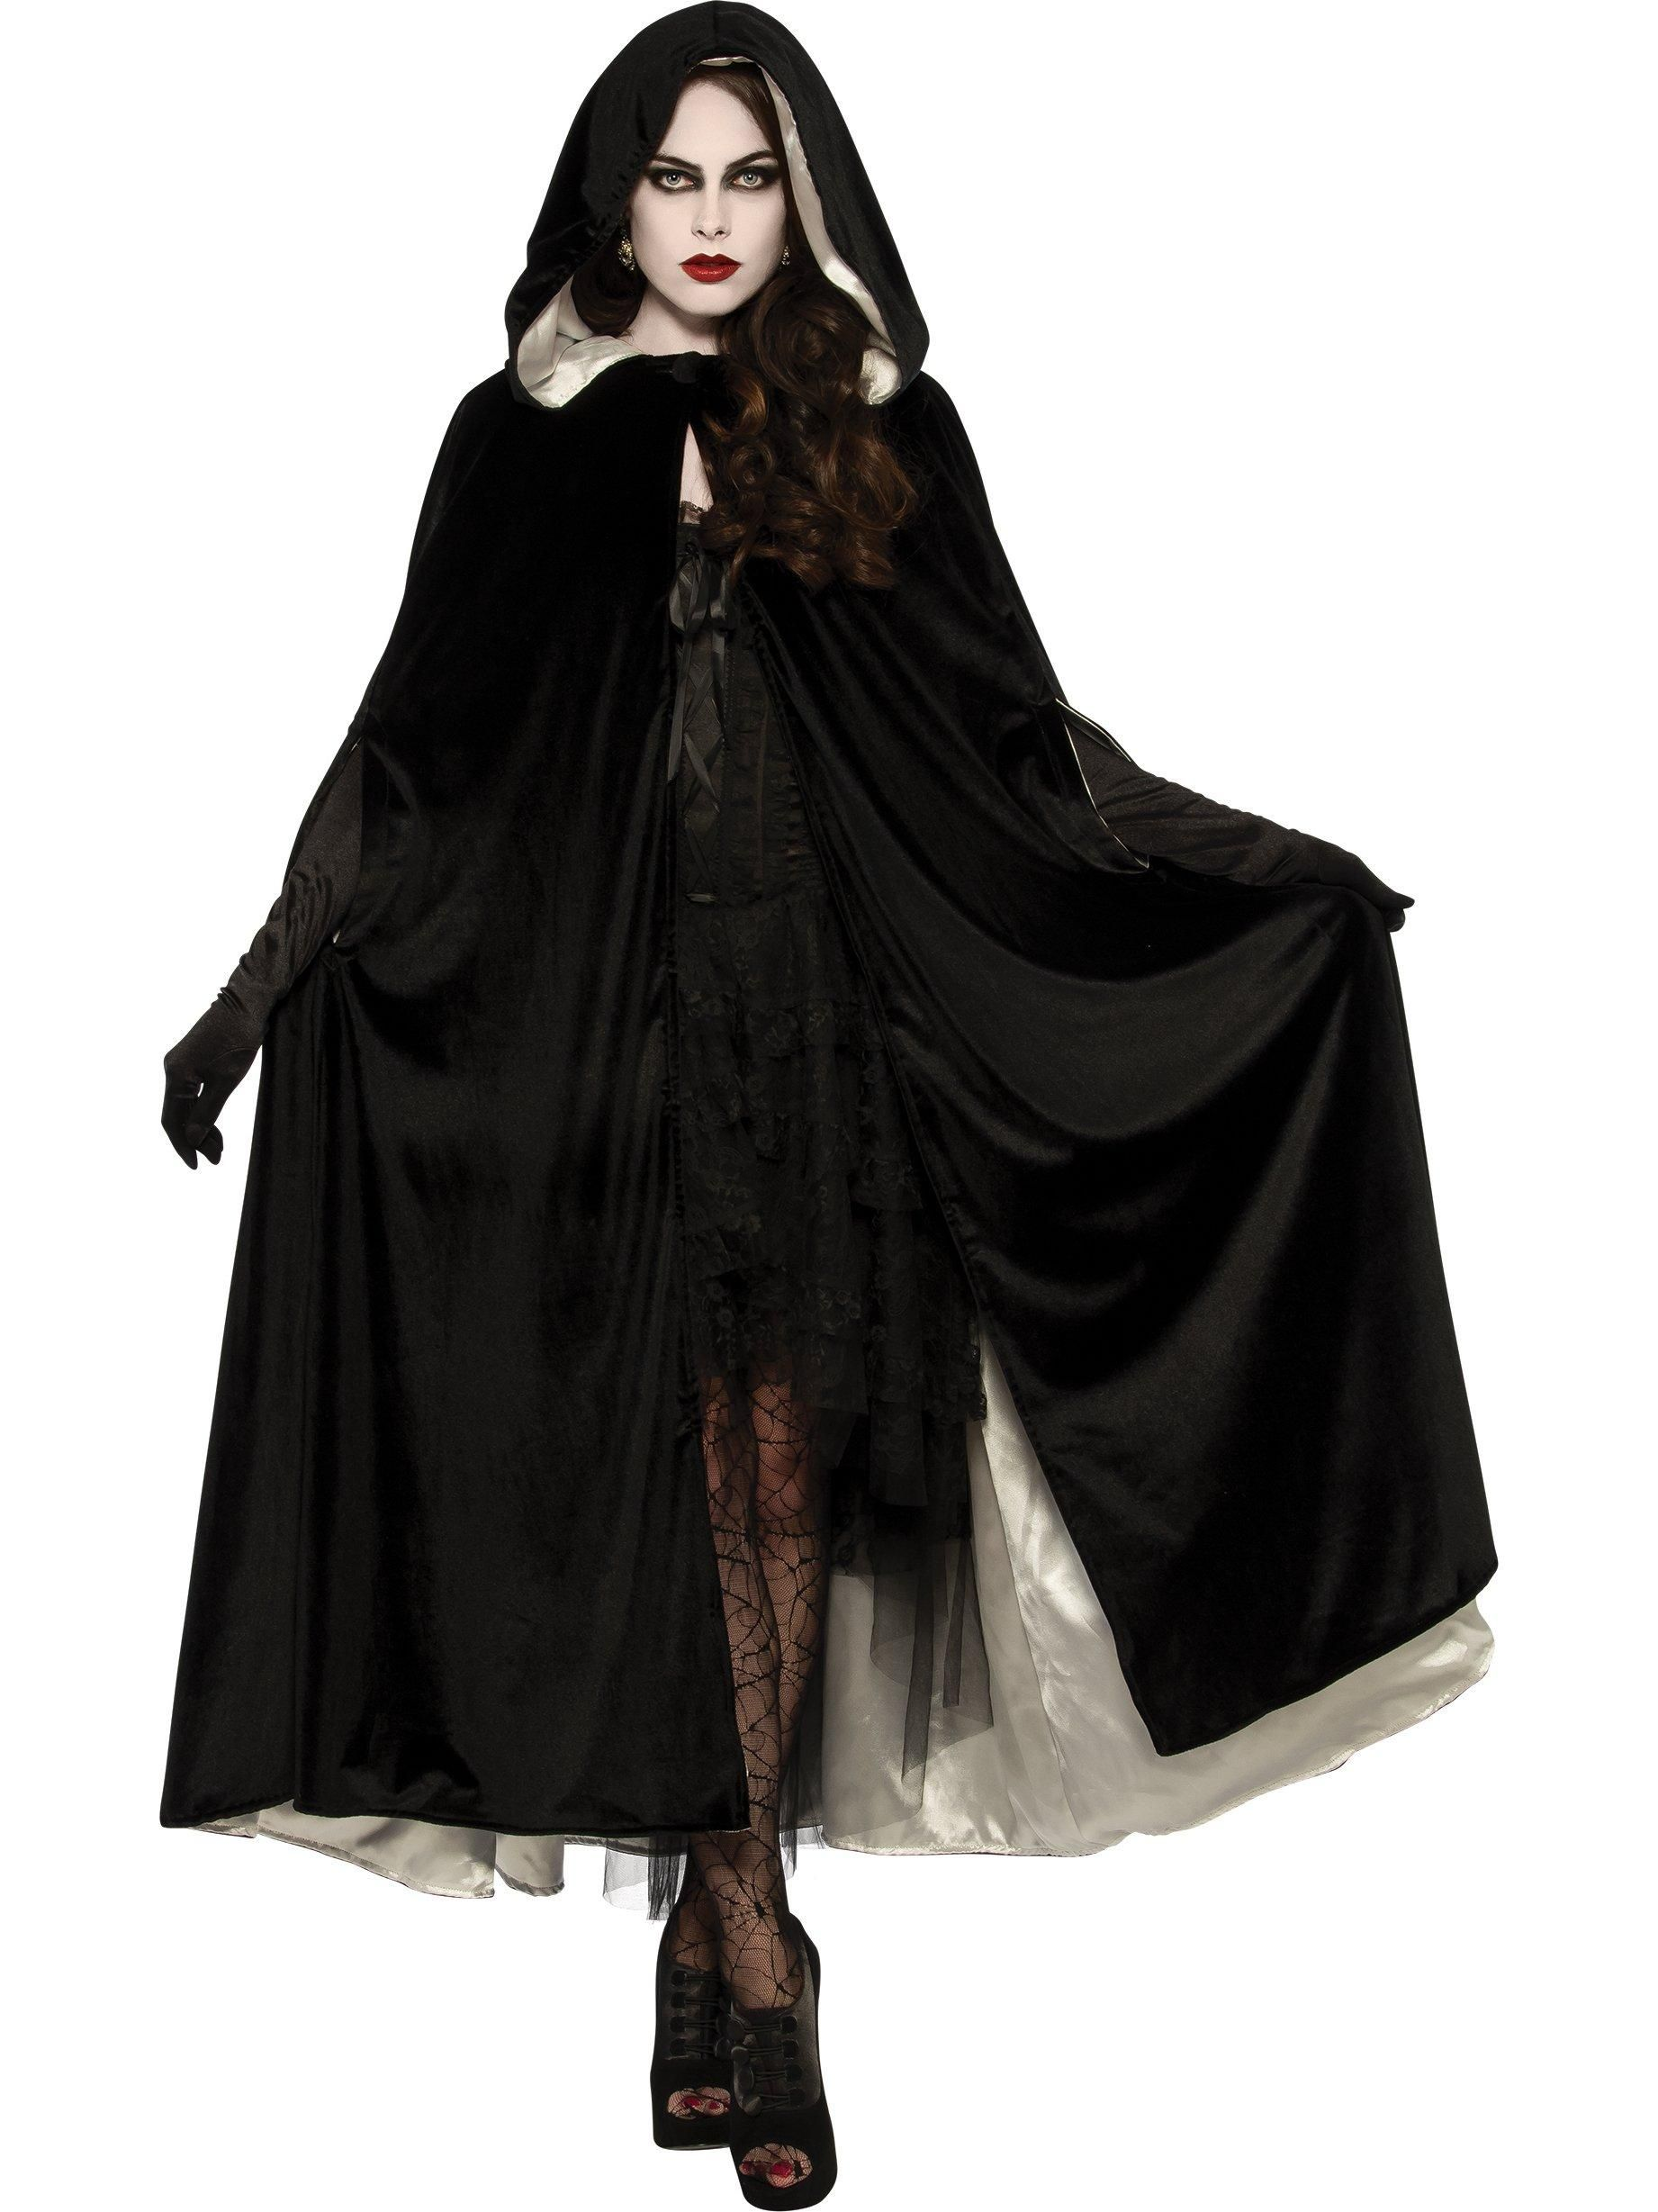 Gothic Vampire Ladies Fancy Dress Adults Dark Halloween Robe Costume Outfit